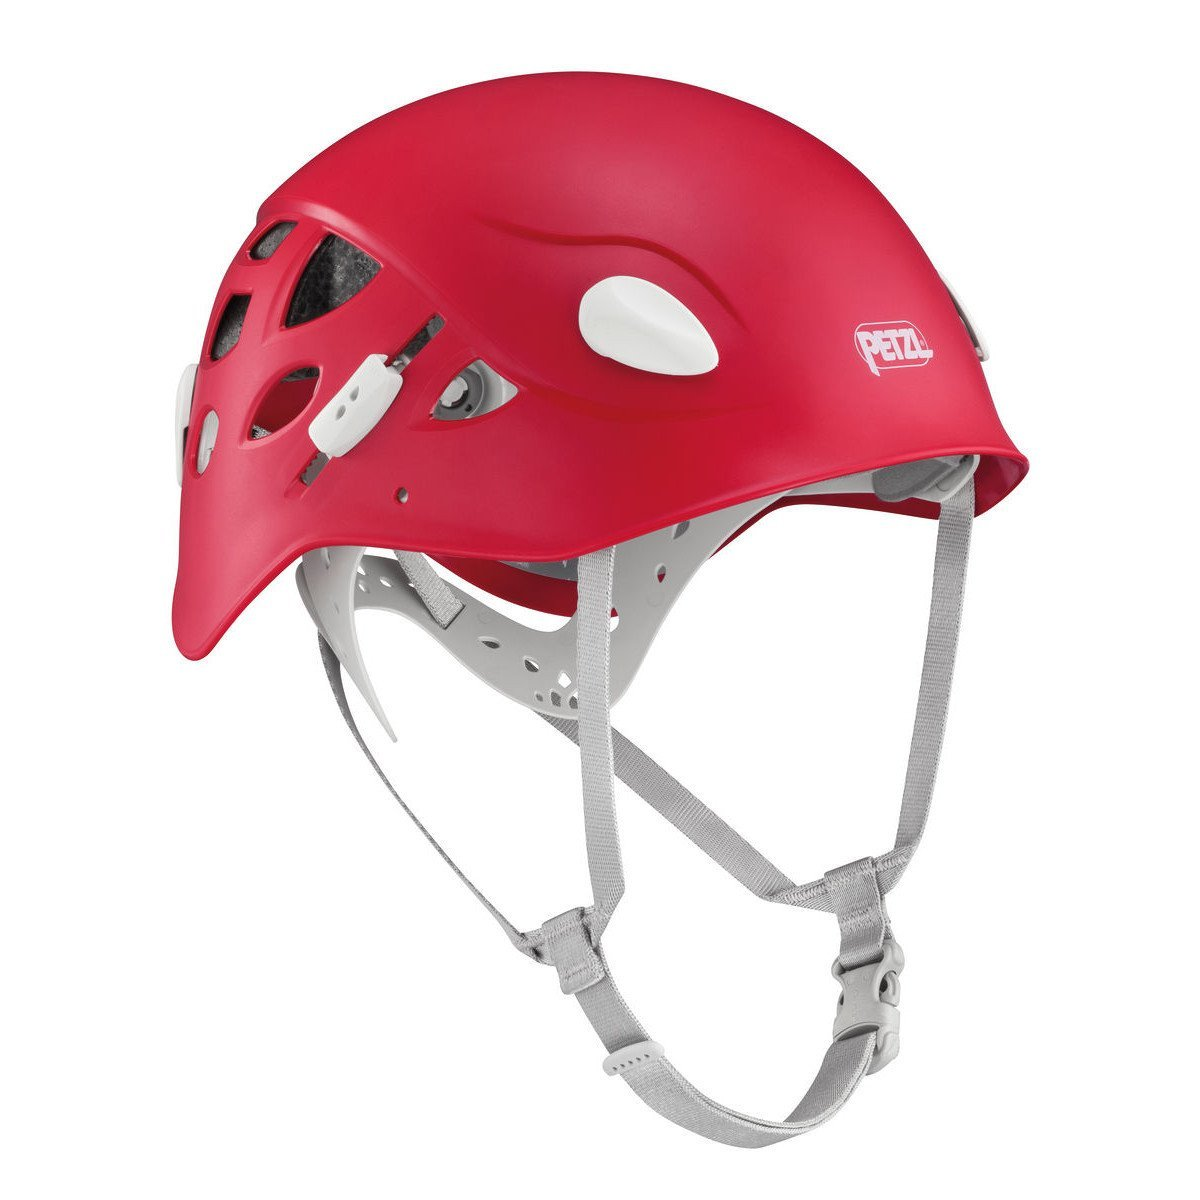 Petzl Elia womens climbing helmet, in red colour